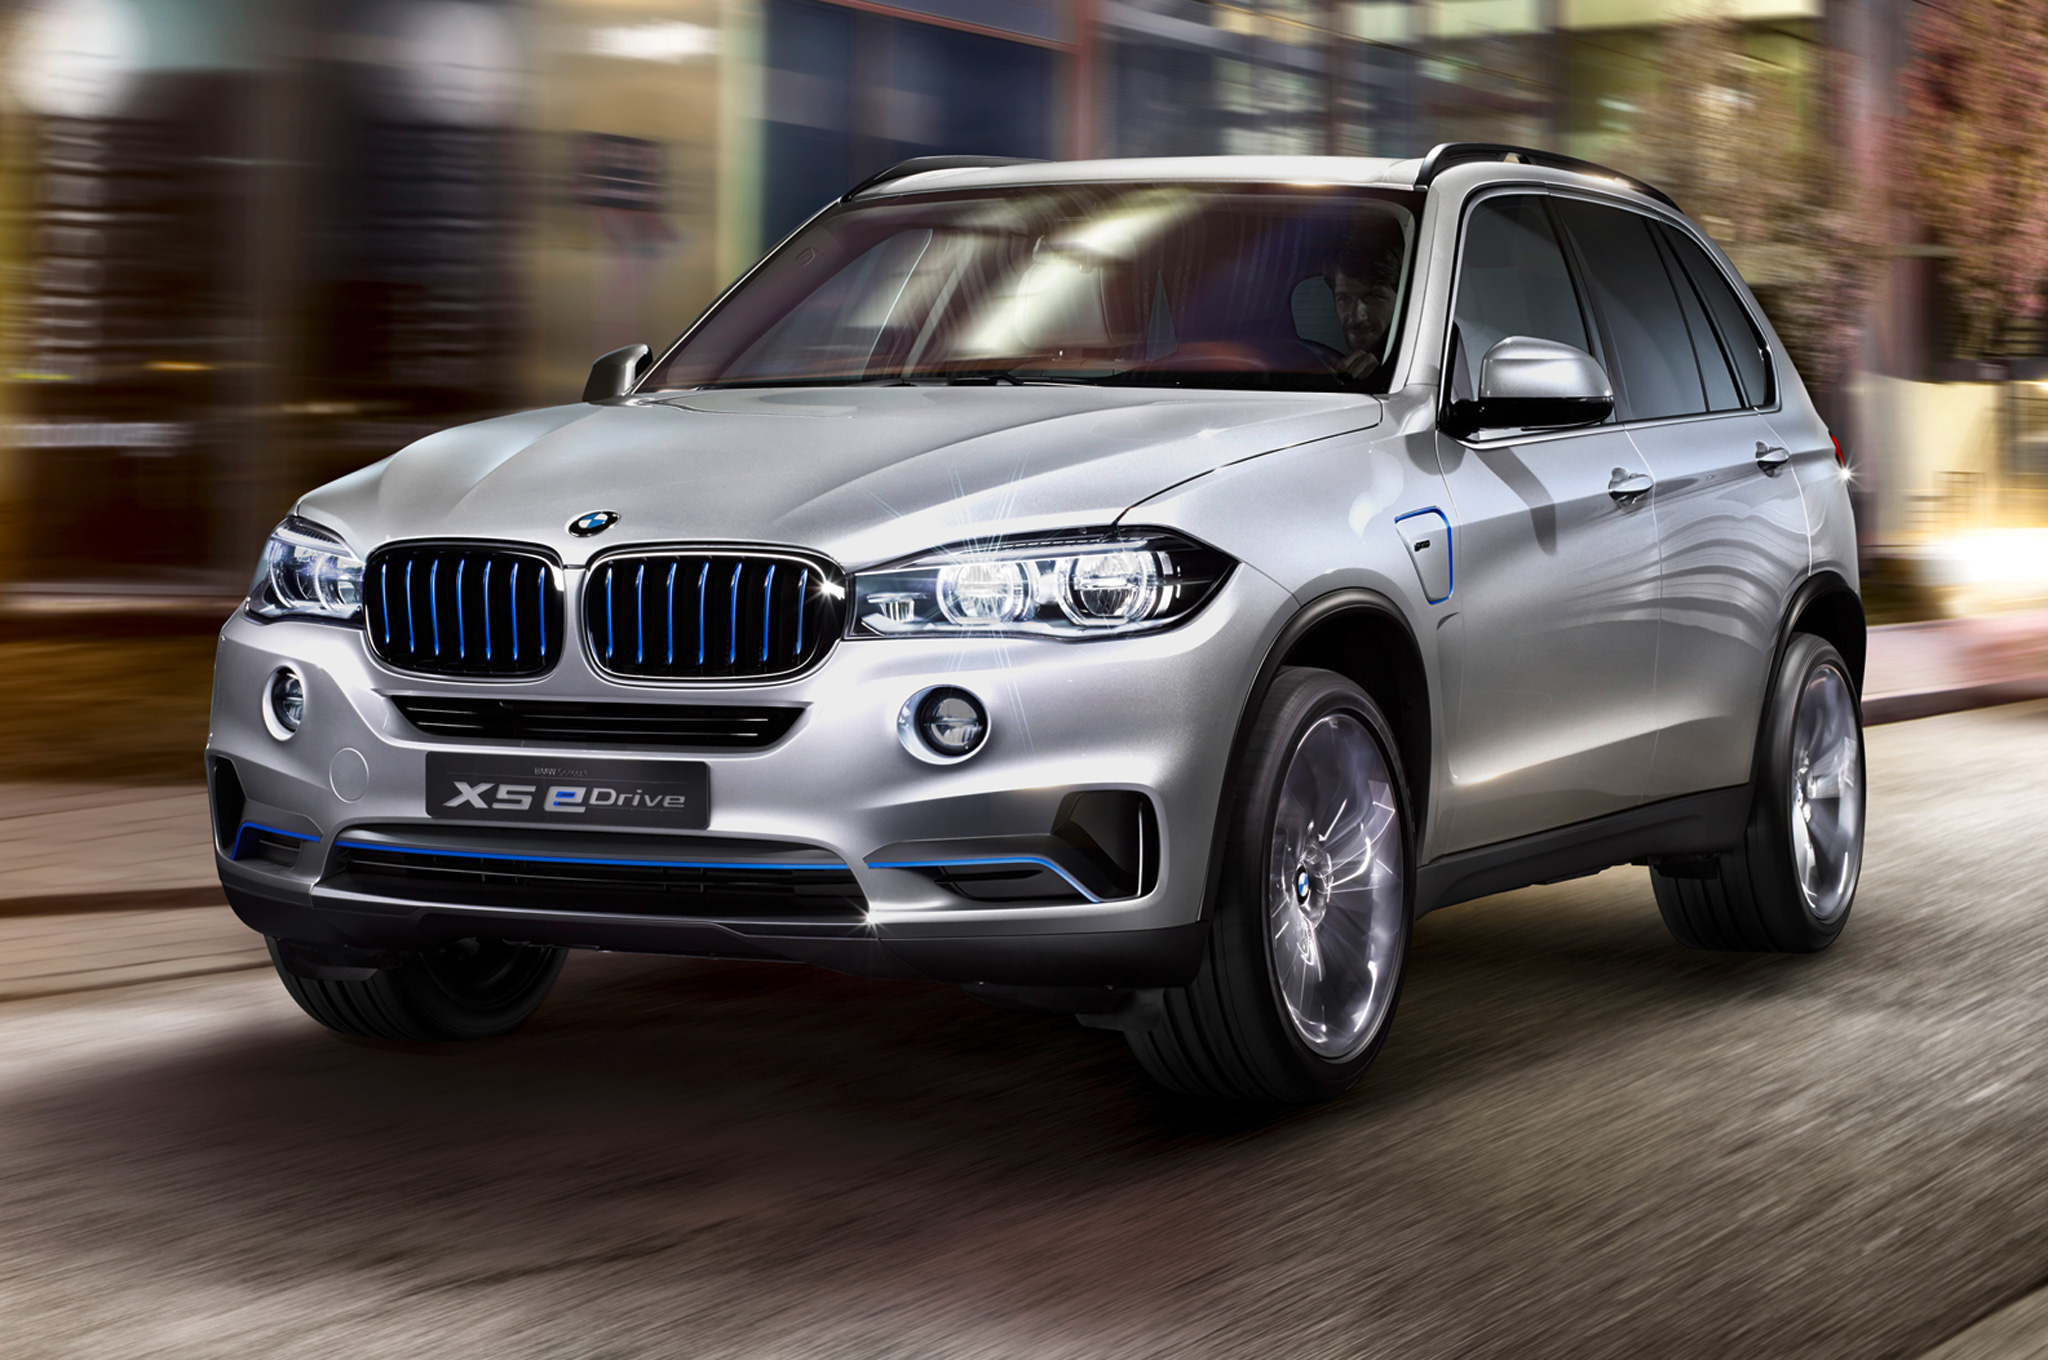 340-HP BMW Concept X5 eDrive Plug-in Hybrid Coming to New York